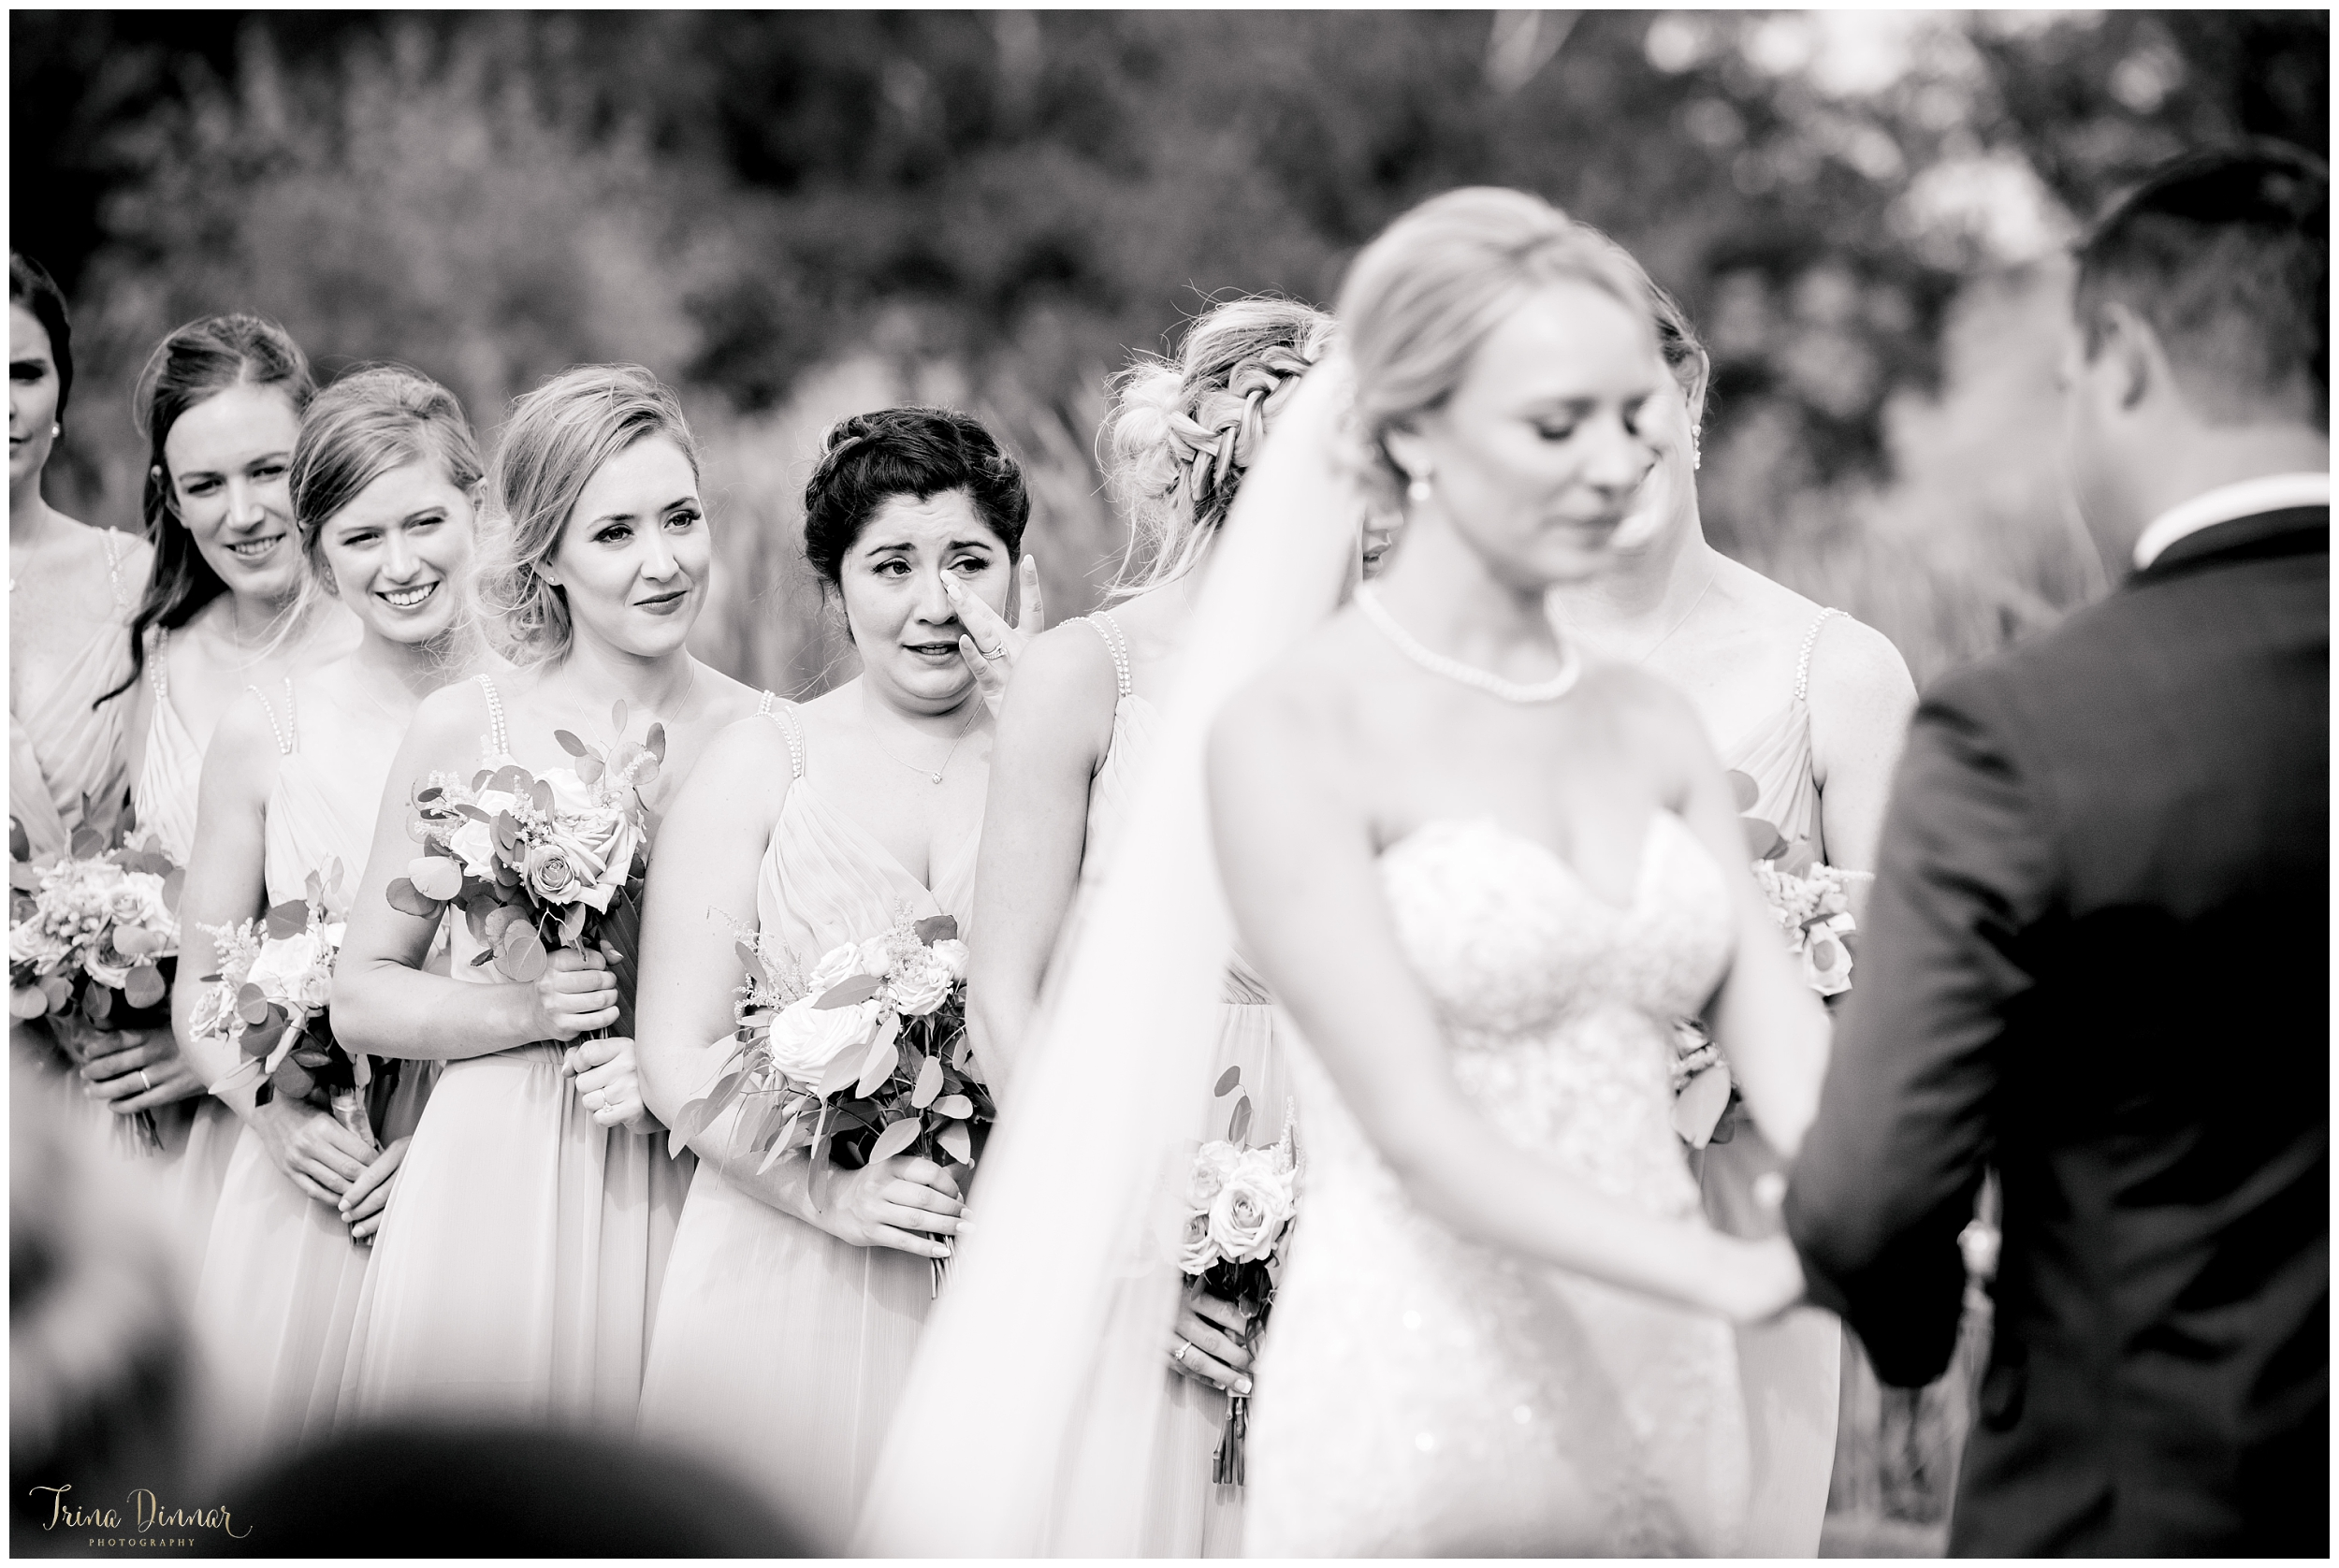 Documentary wedding photographer captures Bridesmaid's emotional moment during ceremony in Maine.